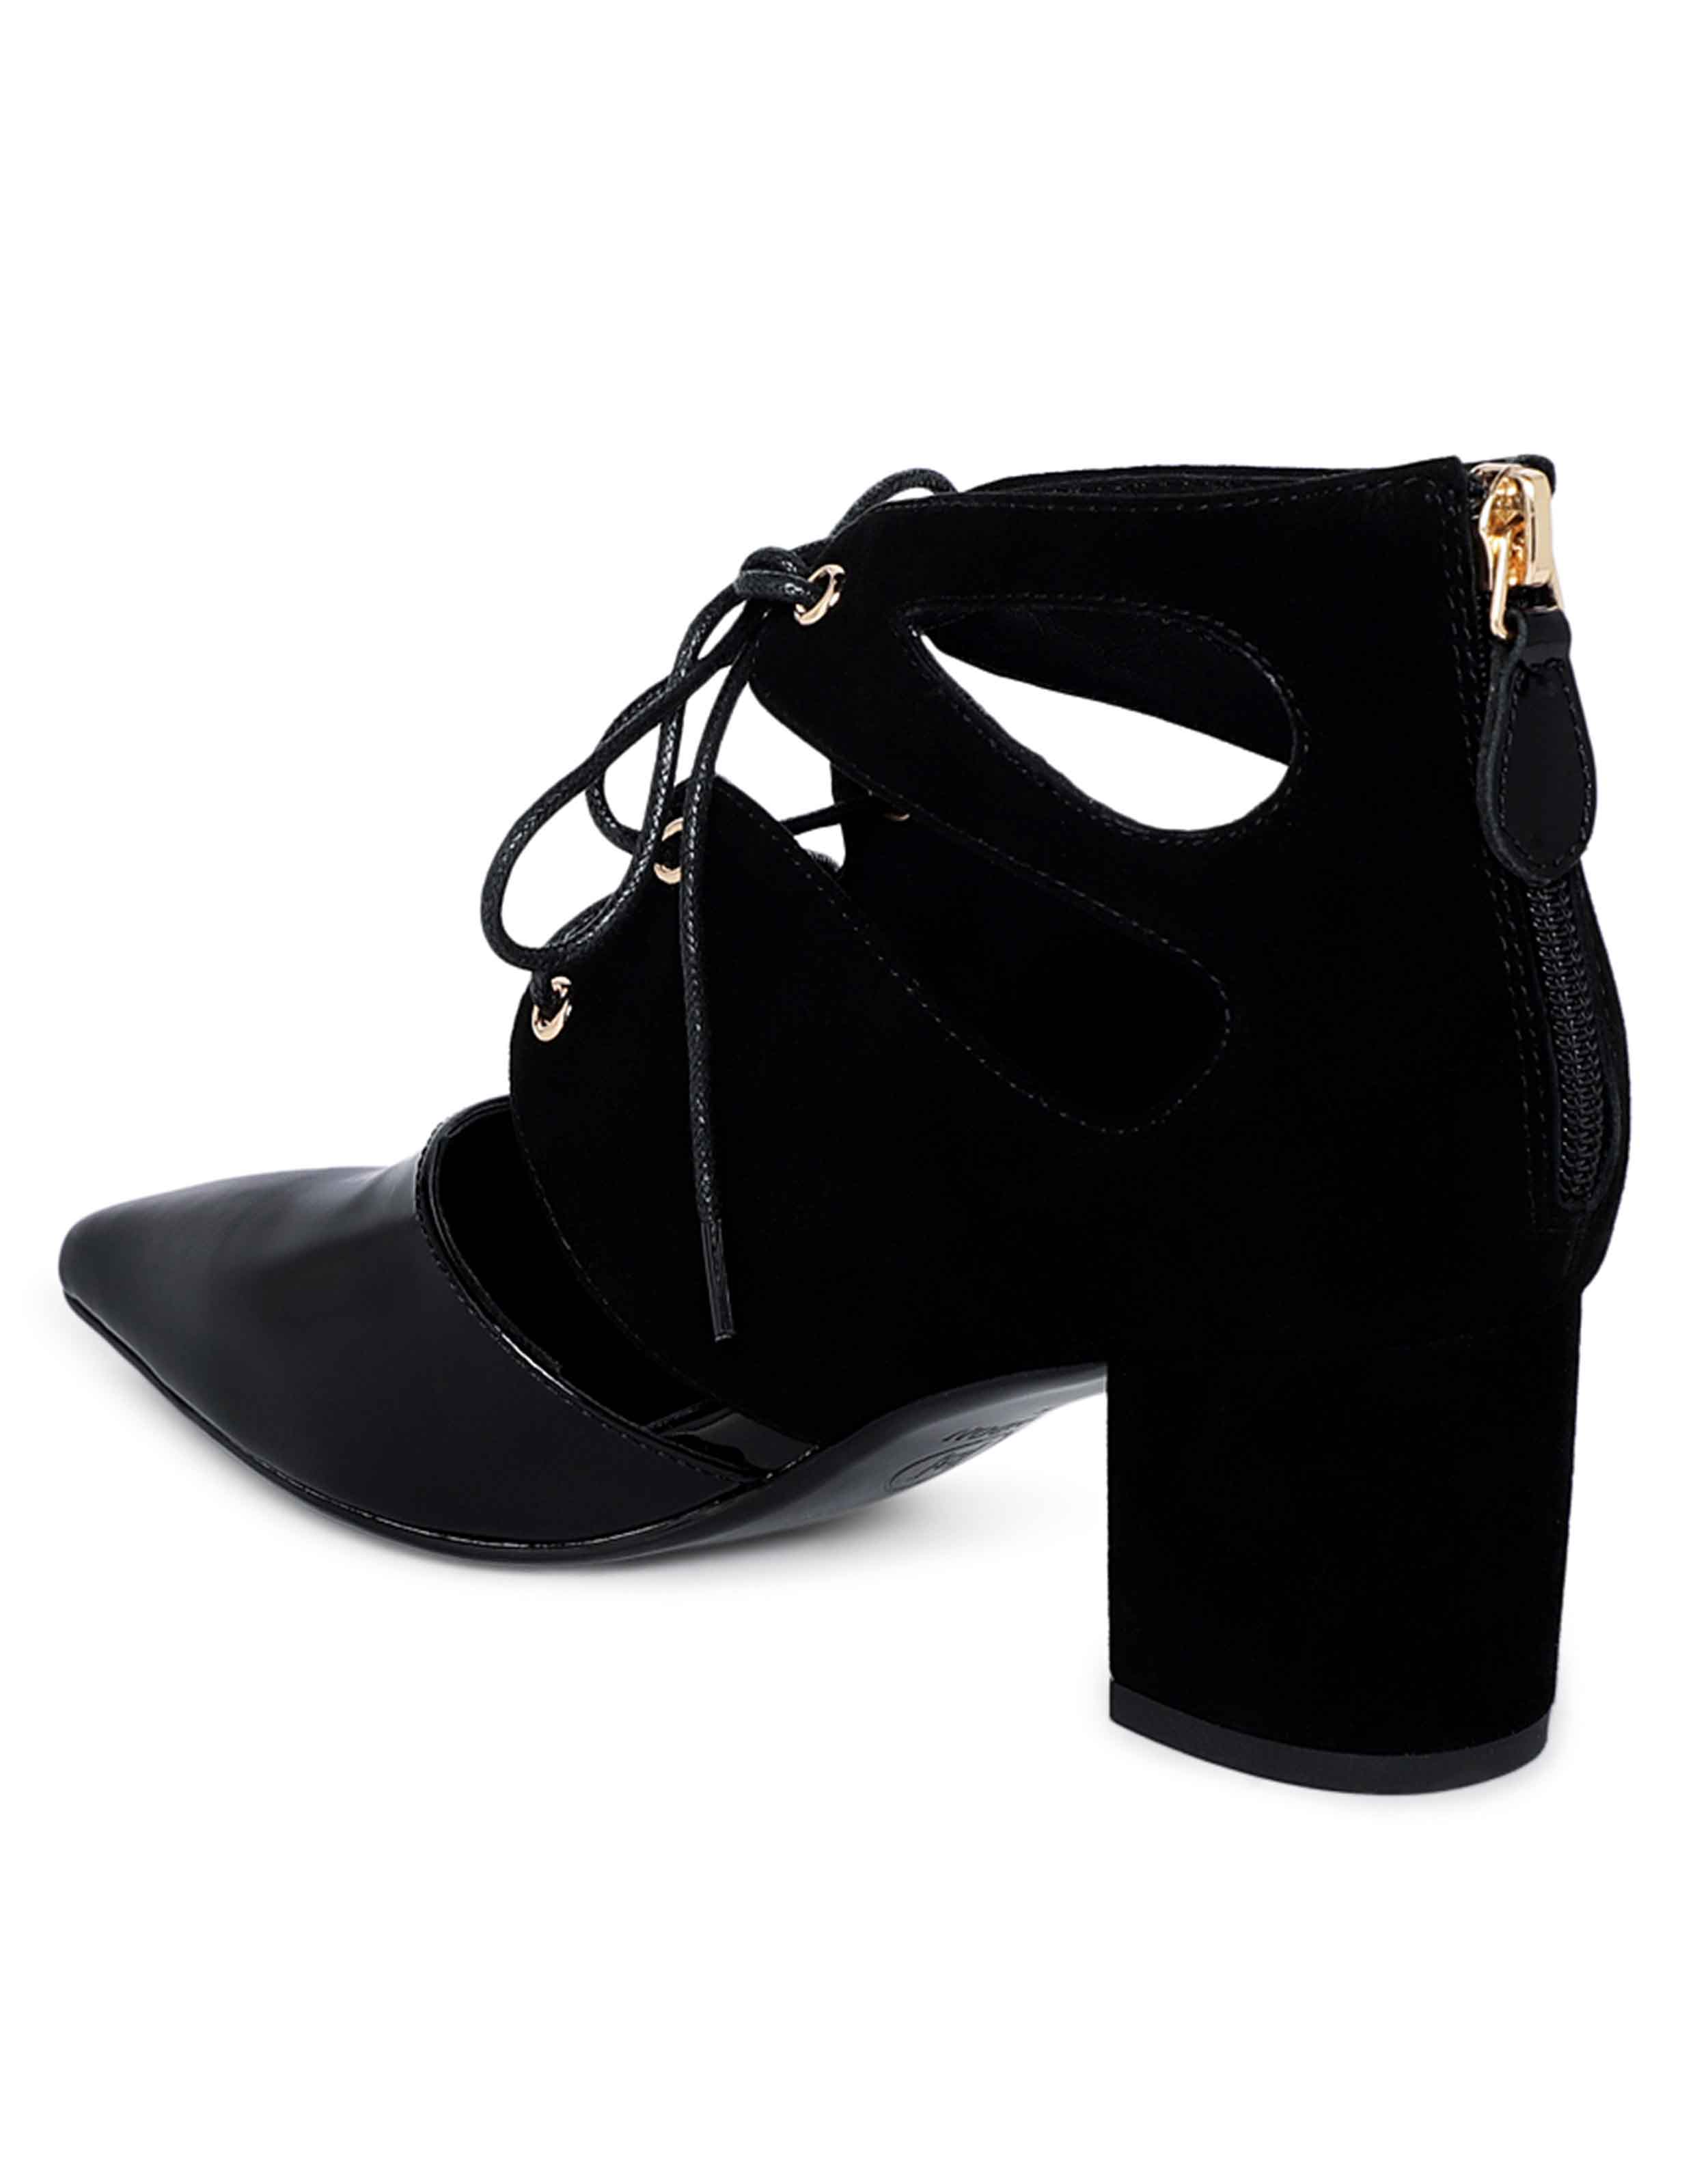 Cut-out Ankle Boots3